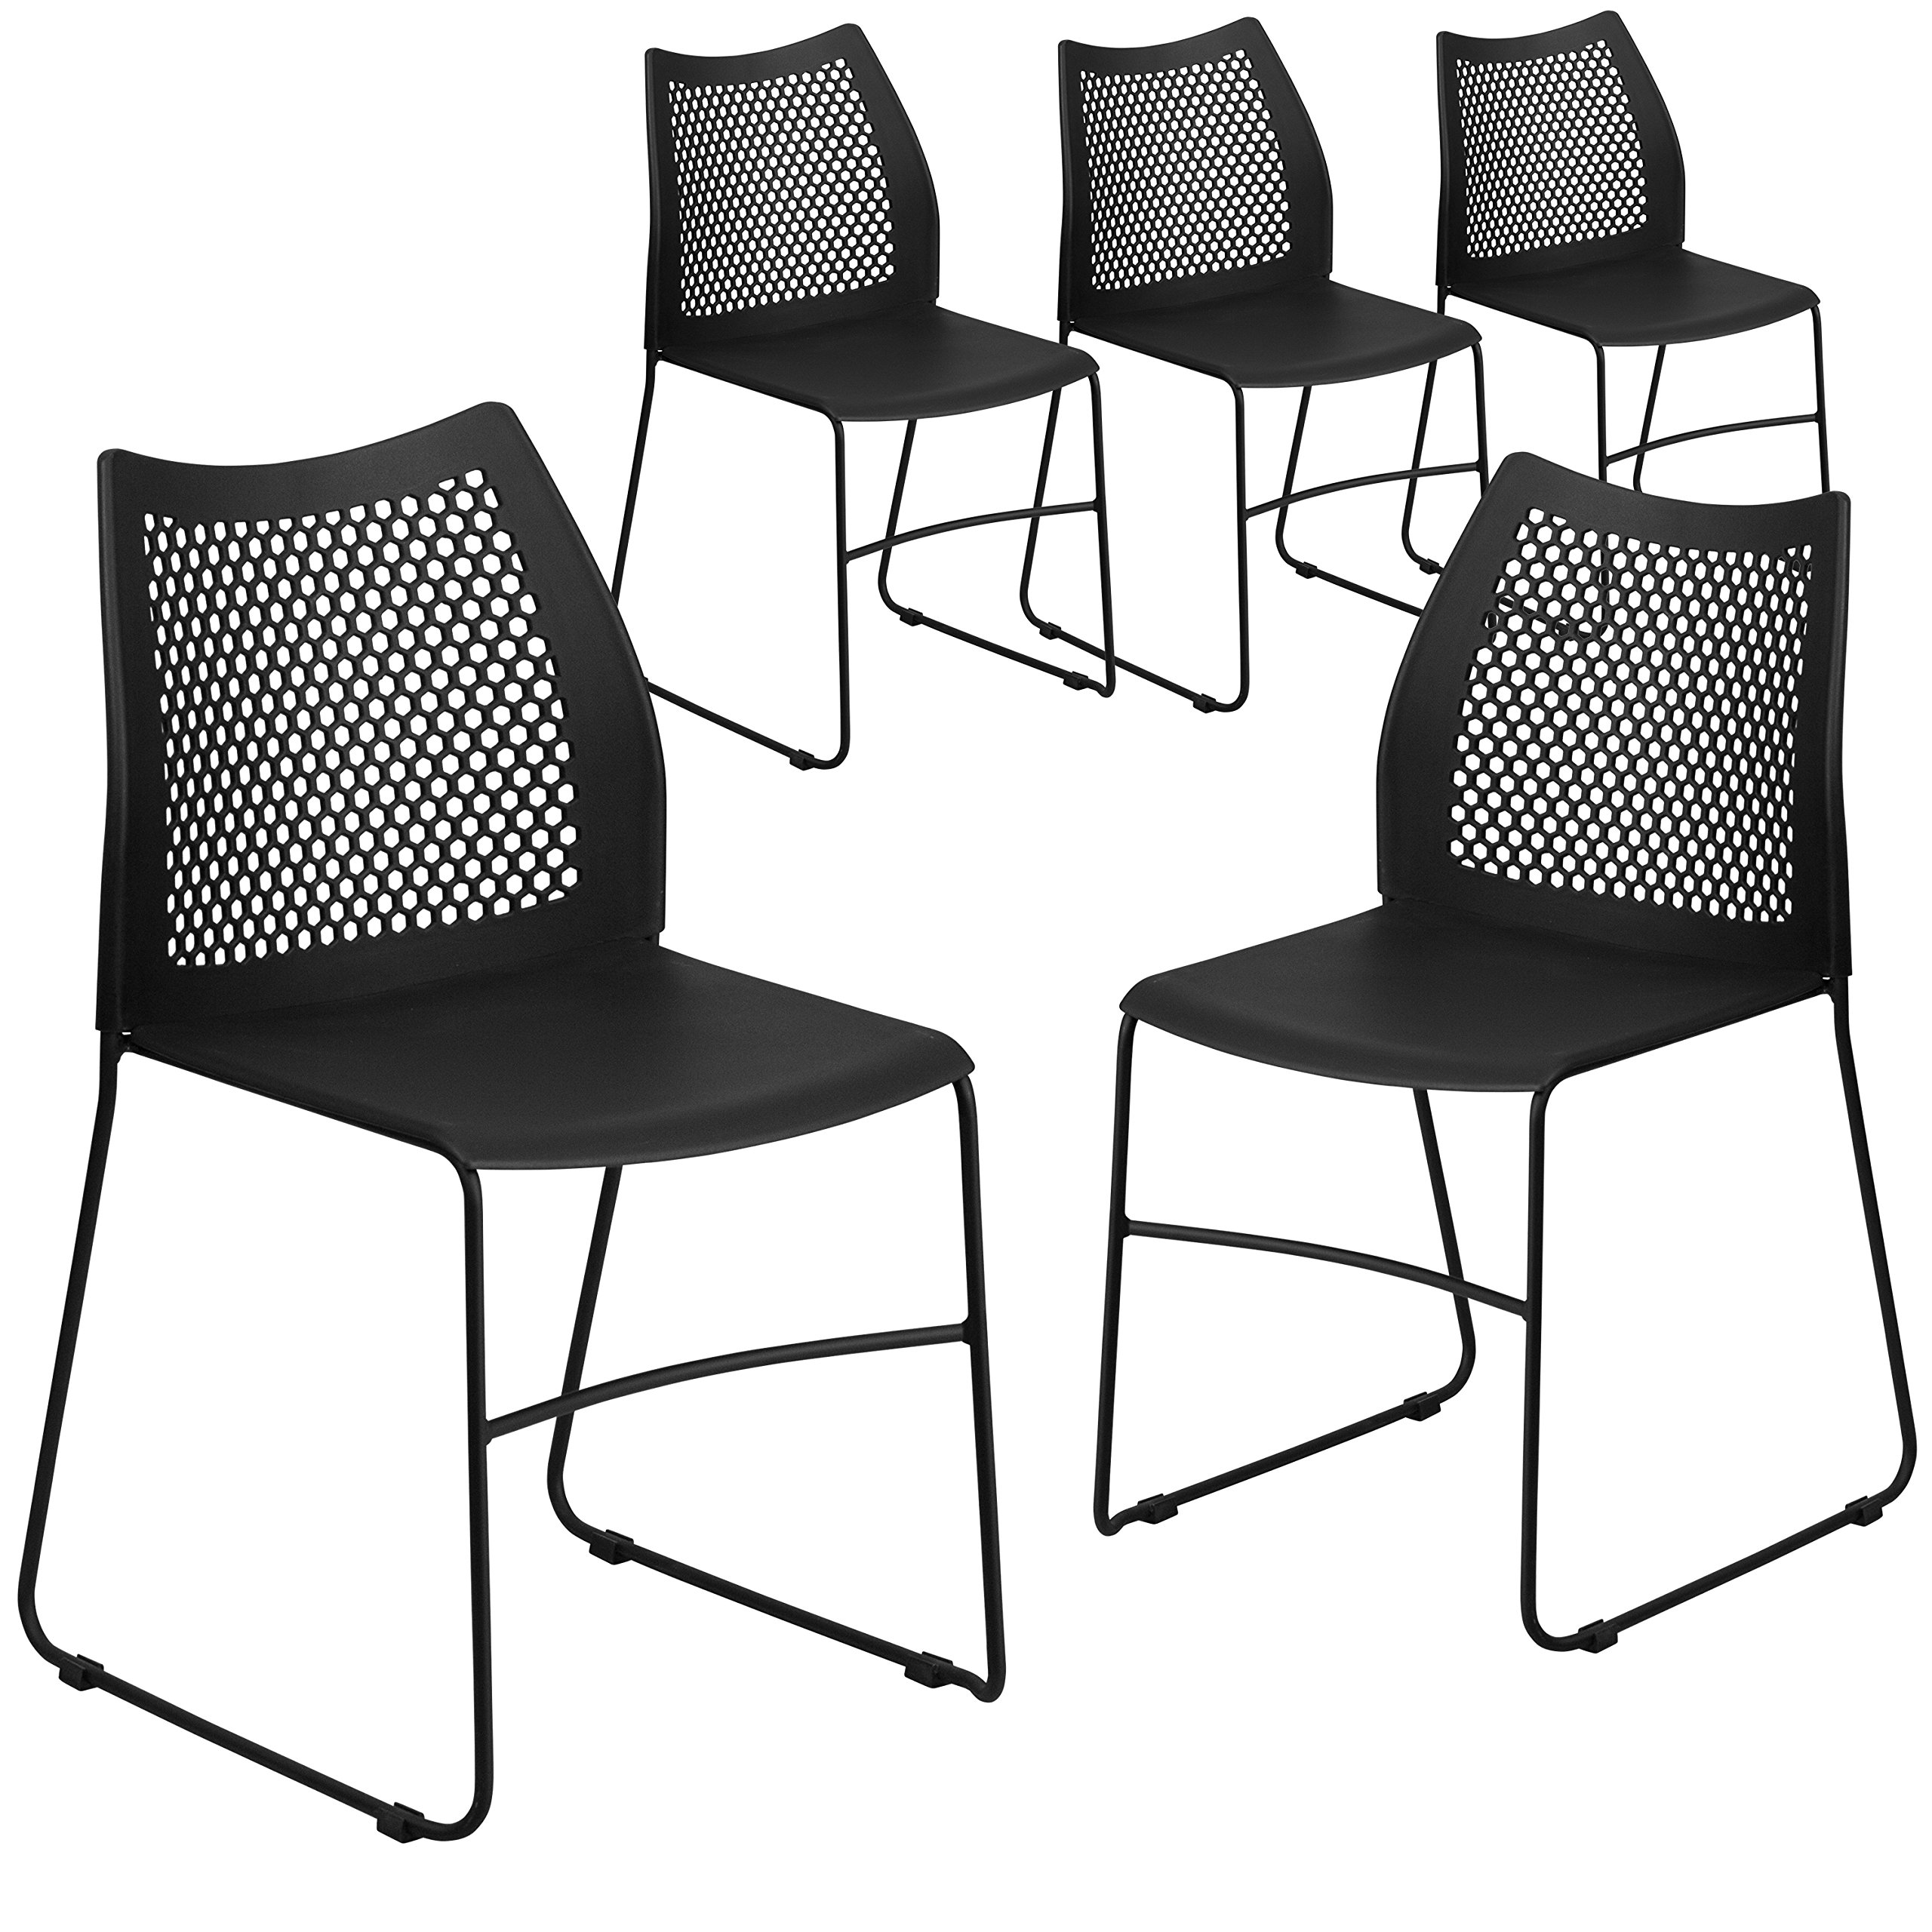 Flash Furniture 5 Pk. HERCULES Series 661 lb. Capacity Black Sled Base Stack Chair with Air-Vent Back by Flash Furniture